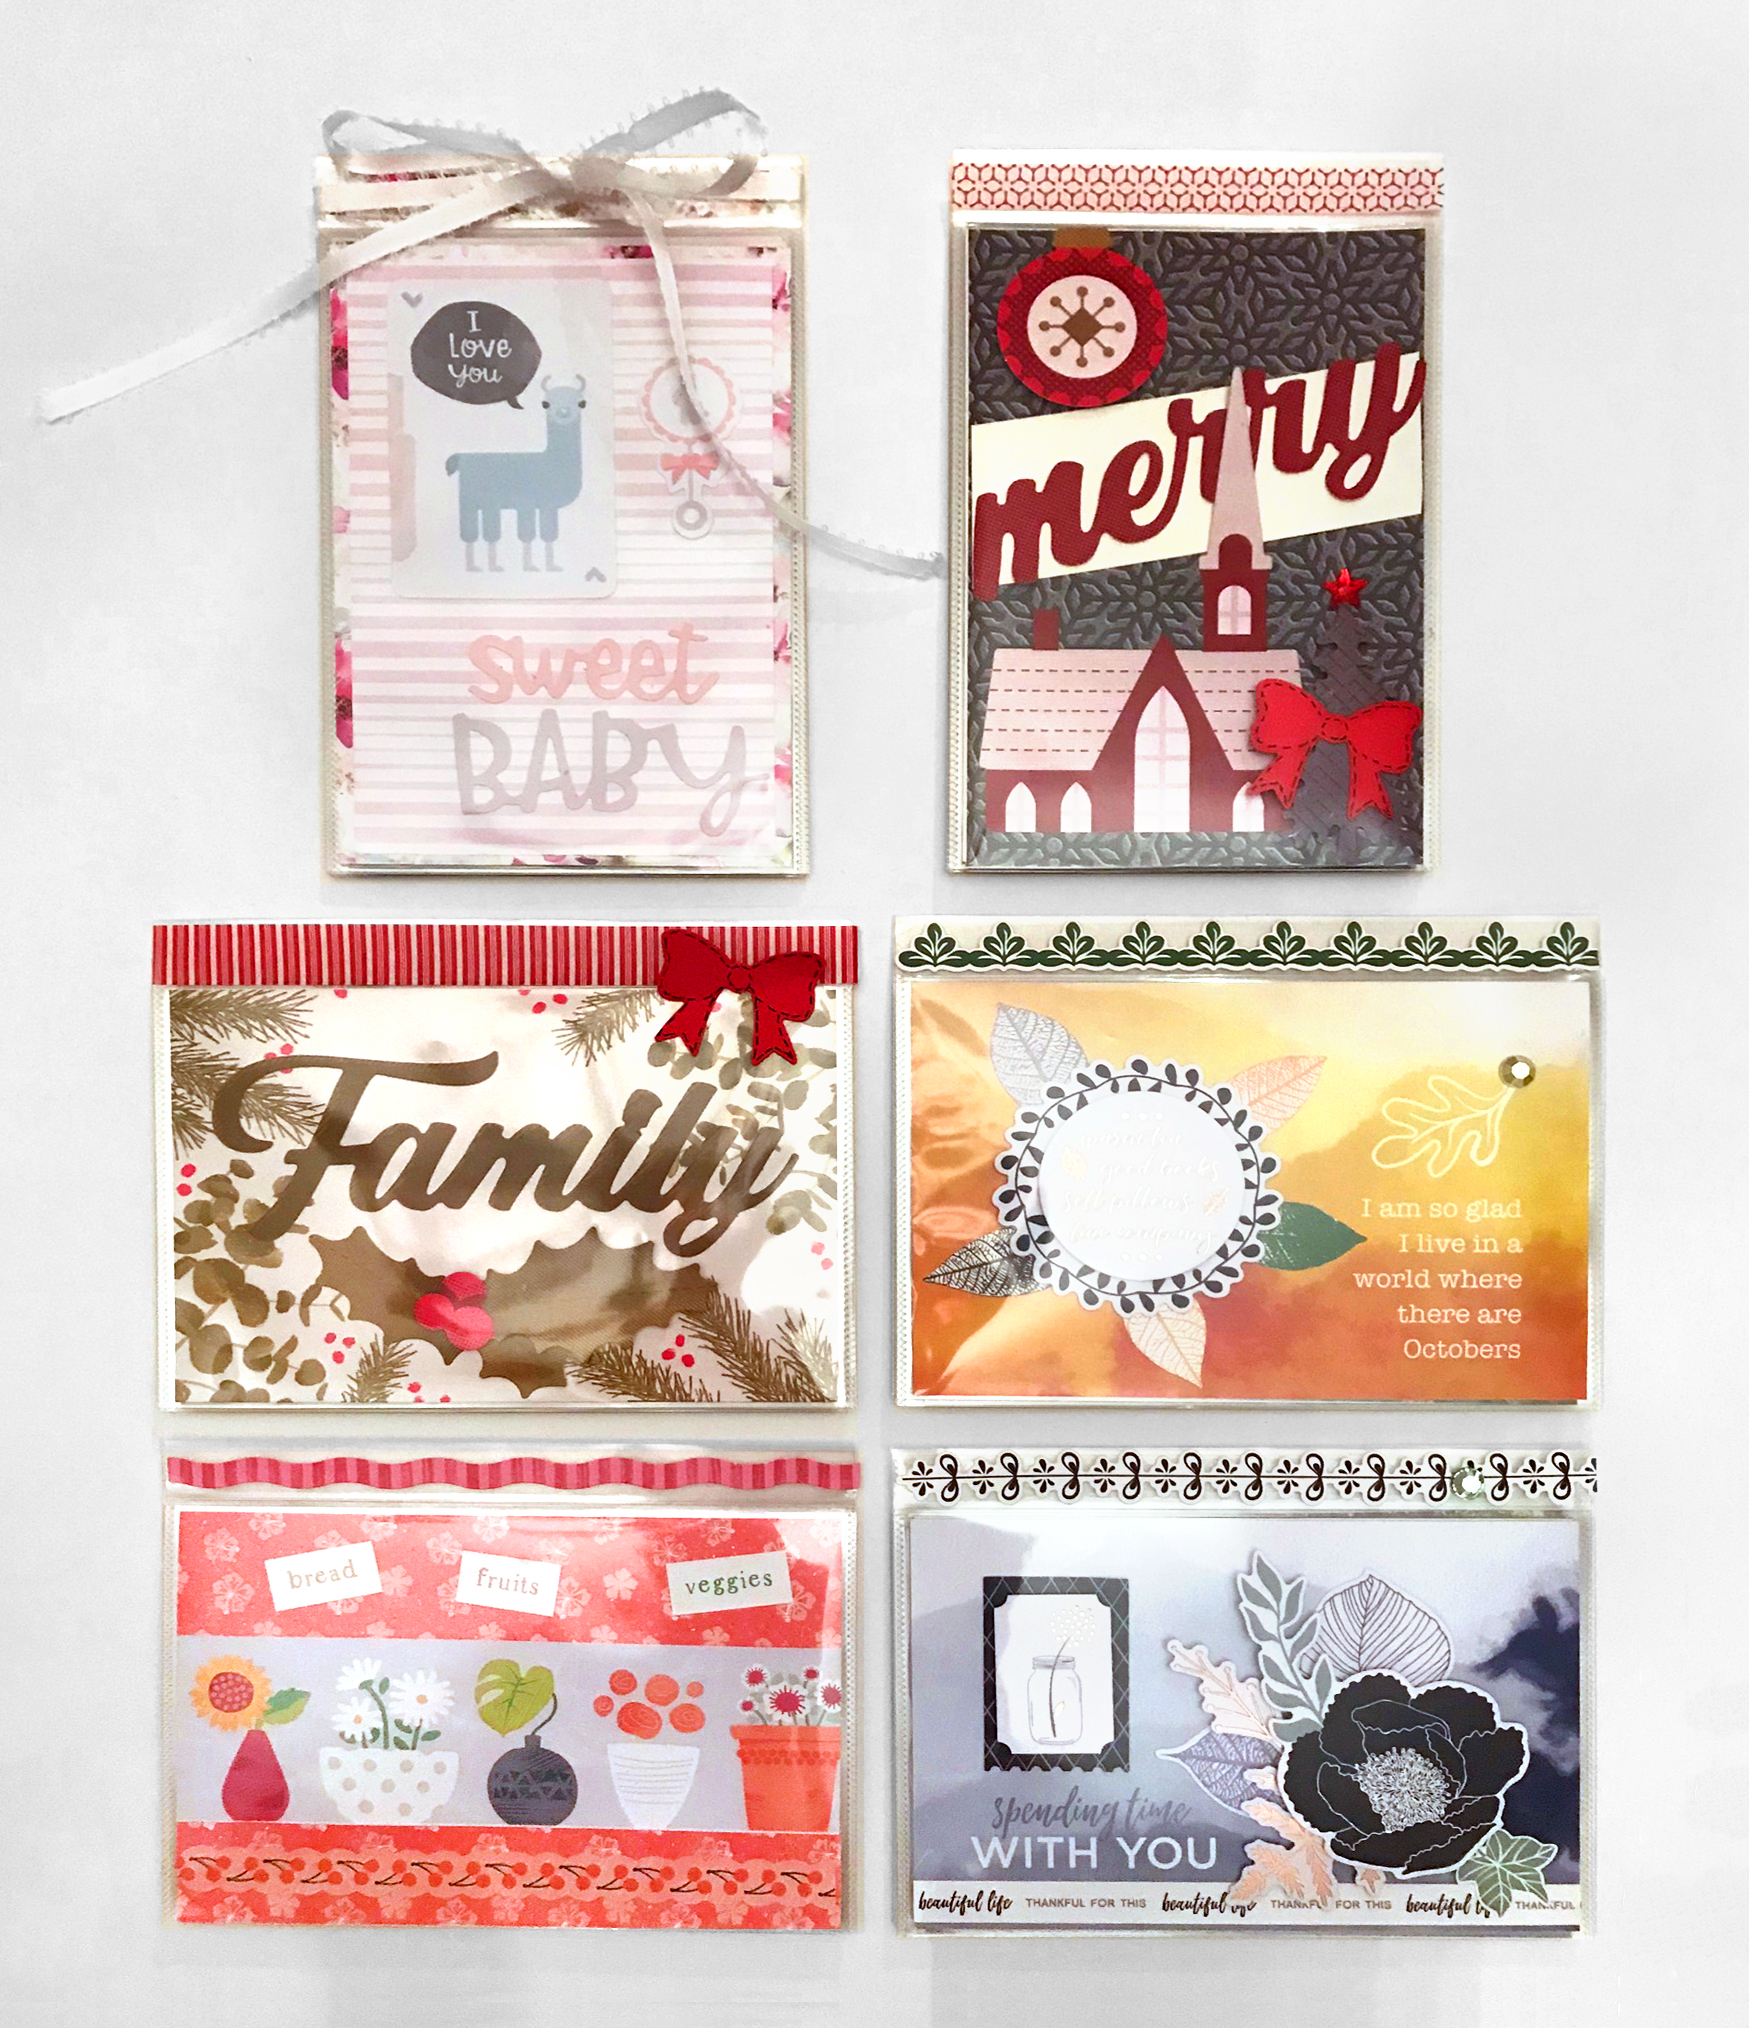 Peekaboo-Pockets-Flip-Book-Creative-Memories10